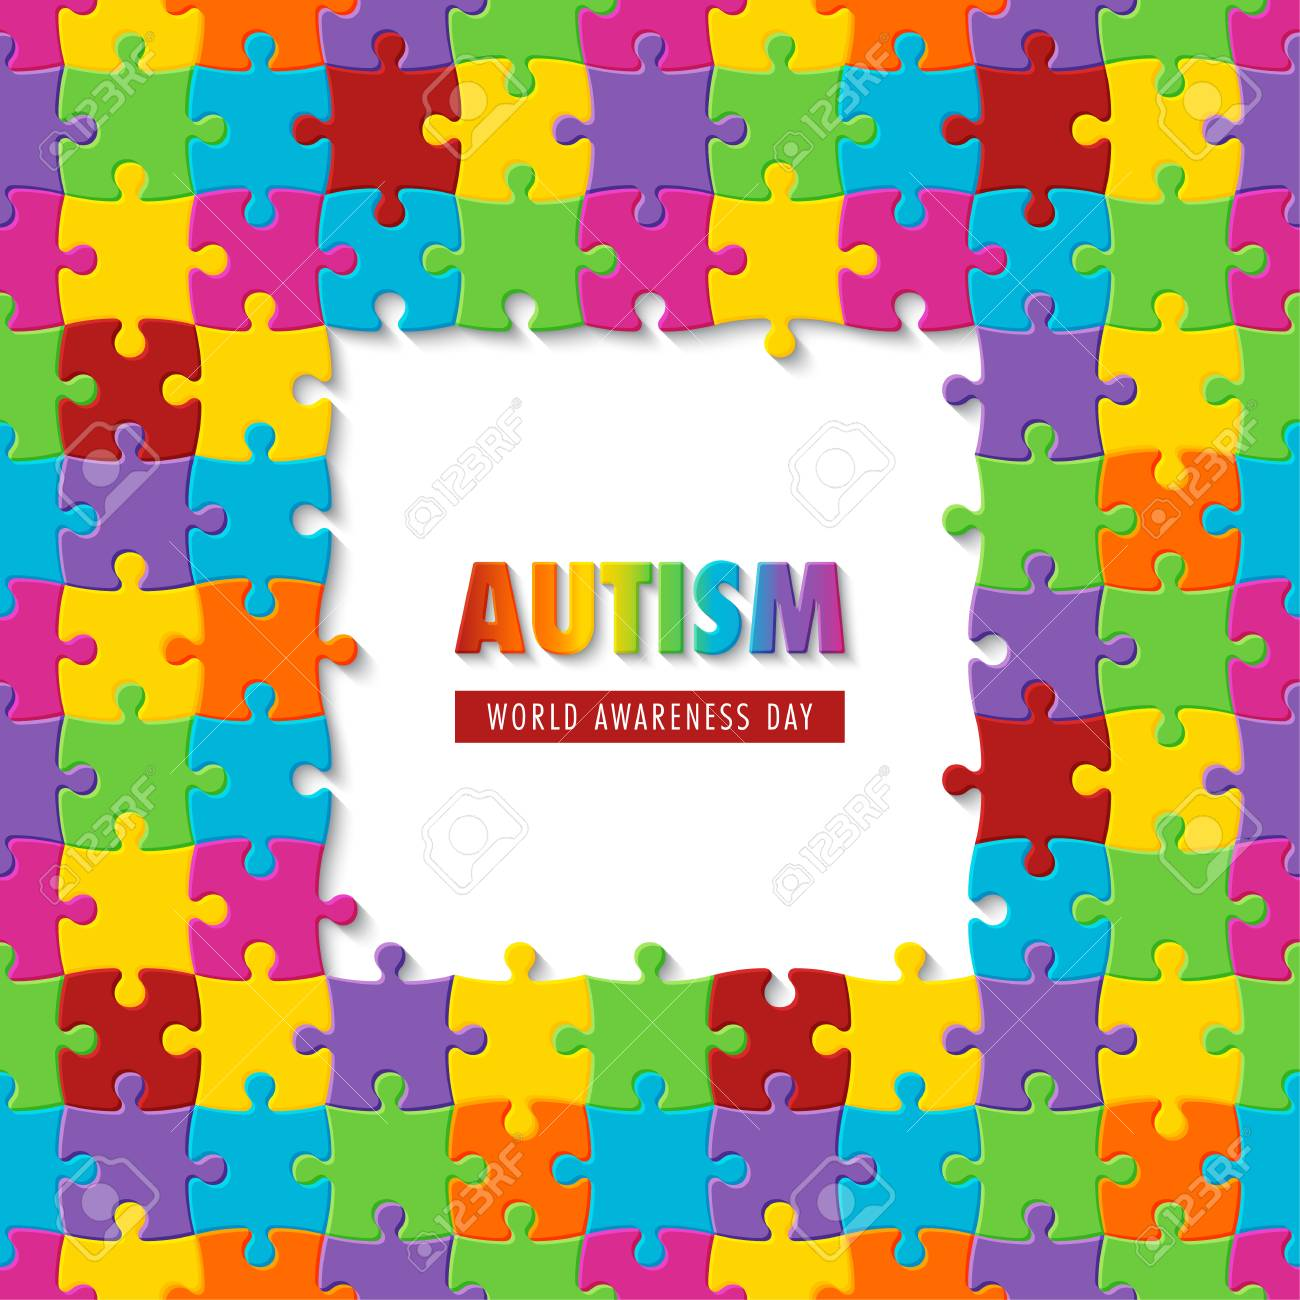 World Autism Awareness Day Colorful Puzzle Background Symbol 1300x1300